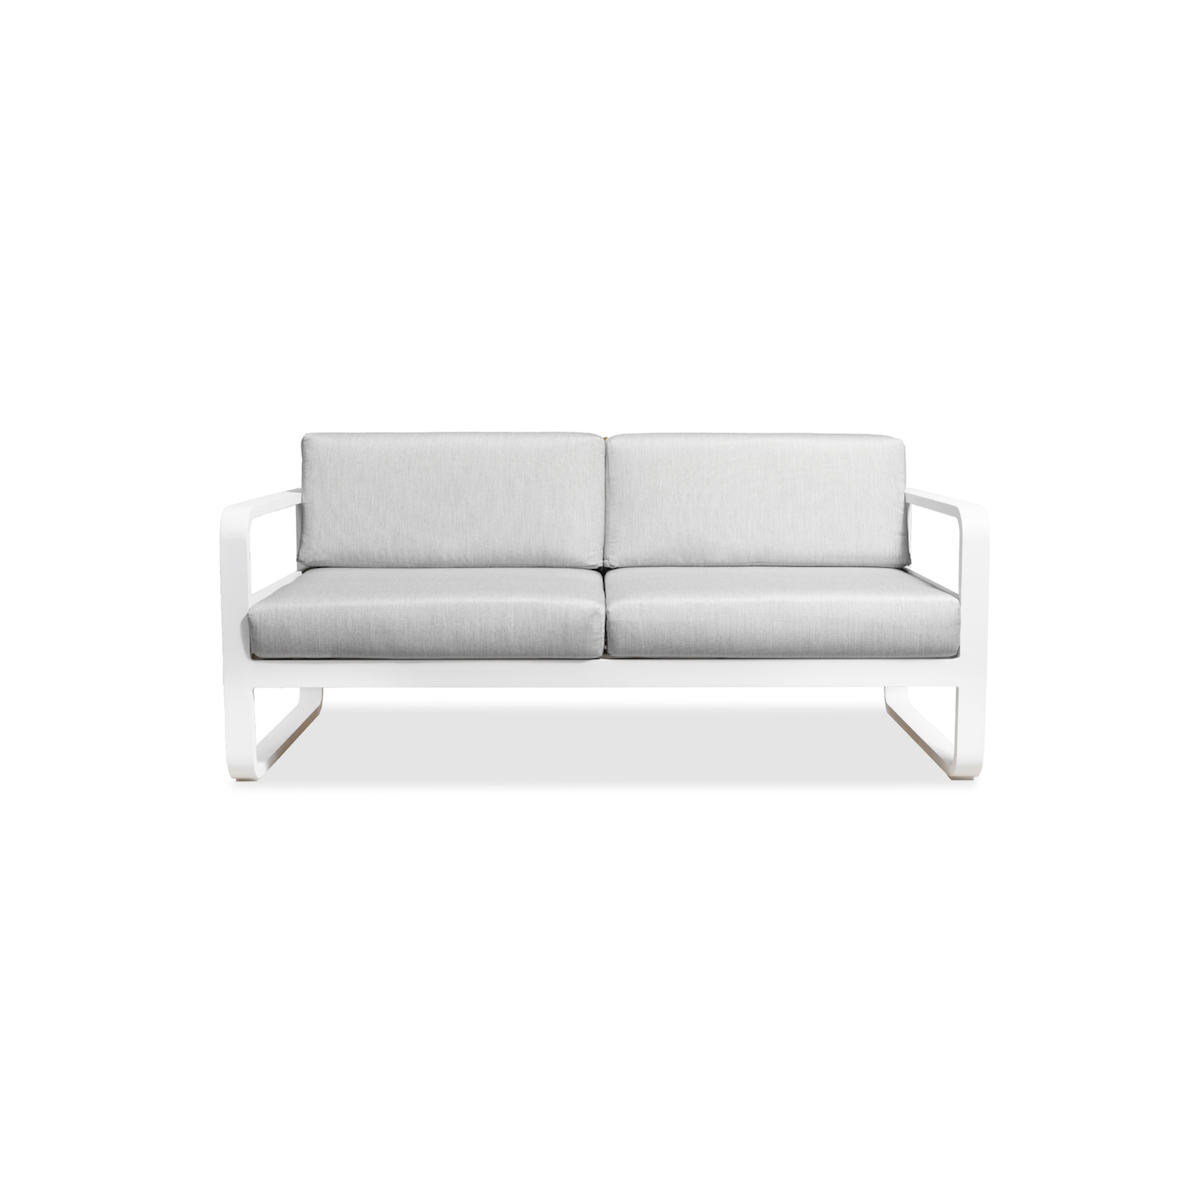 Elara 2 Seater Patio Sofa